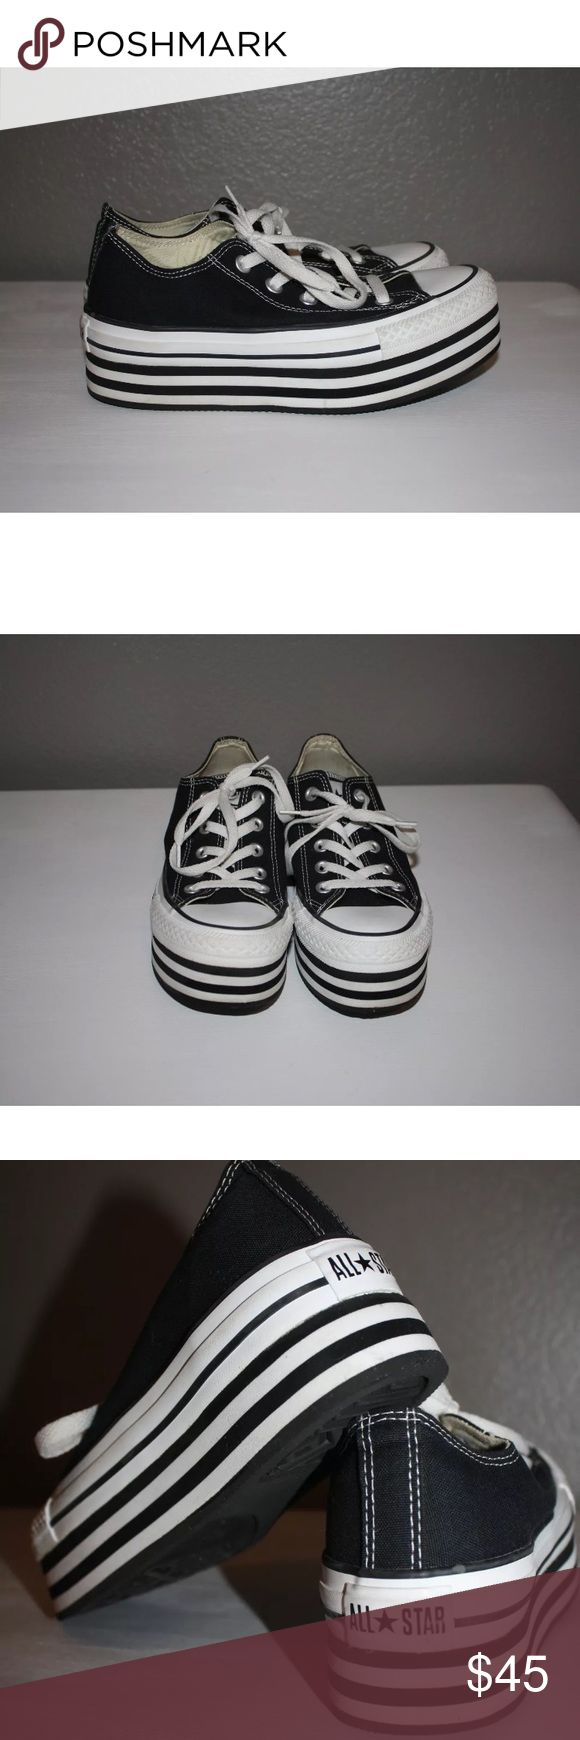 Platform Converse 6 Women's black platform converse size 6. Some minor scuffs at the heels as shown in the pictures. Converse Shoes Platforms